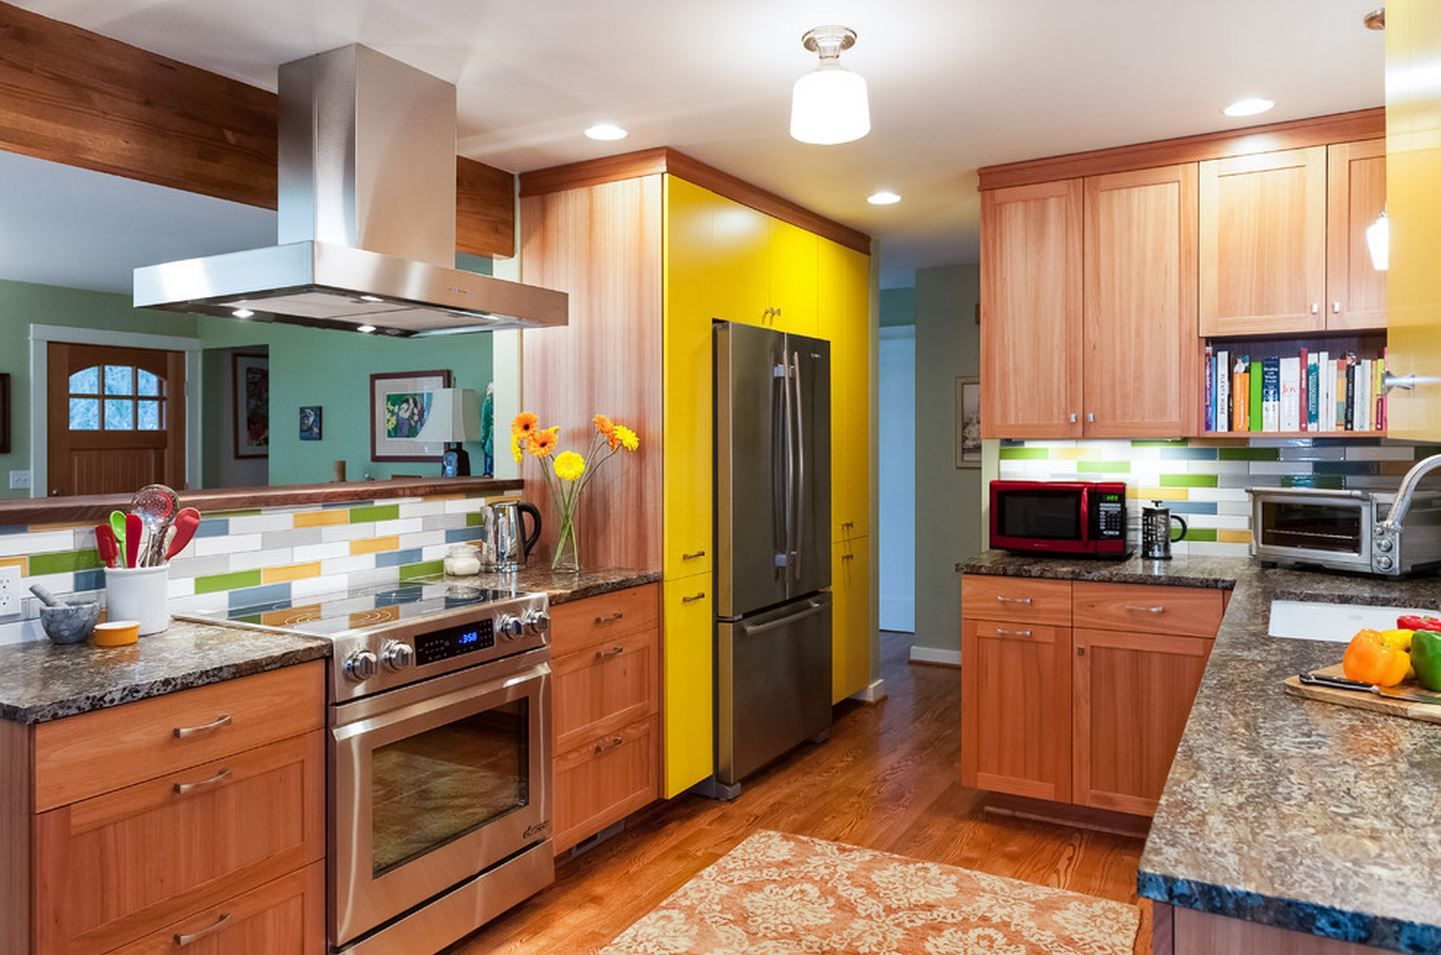 Kitchen by fraley and company with berenson aspire hardware